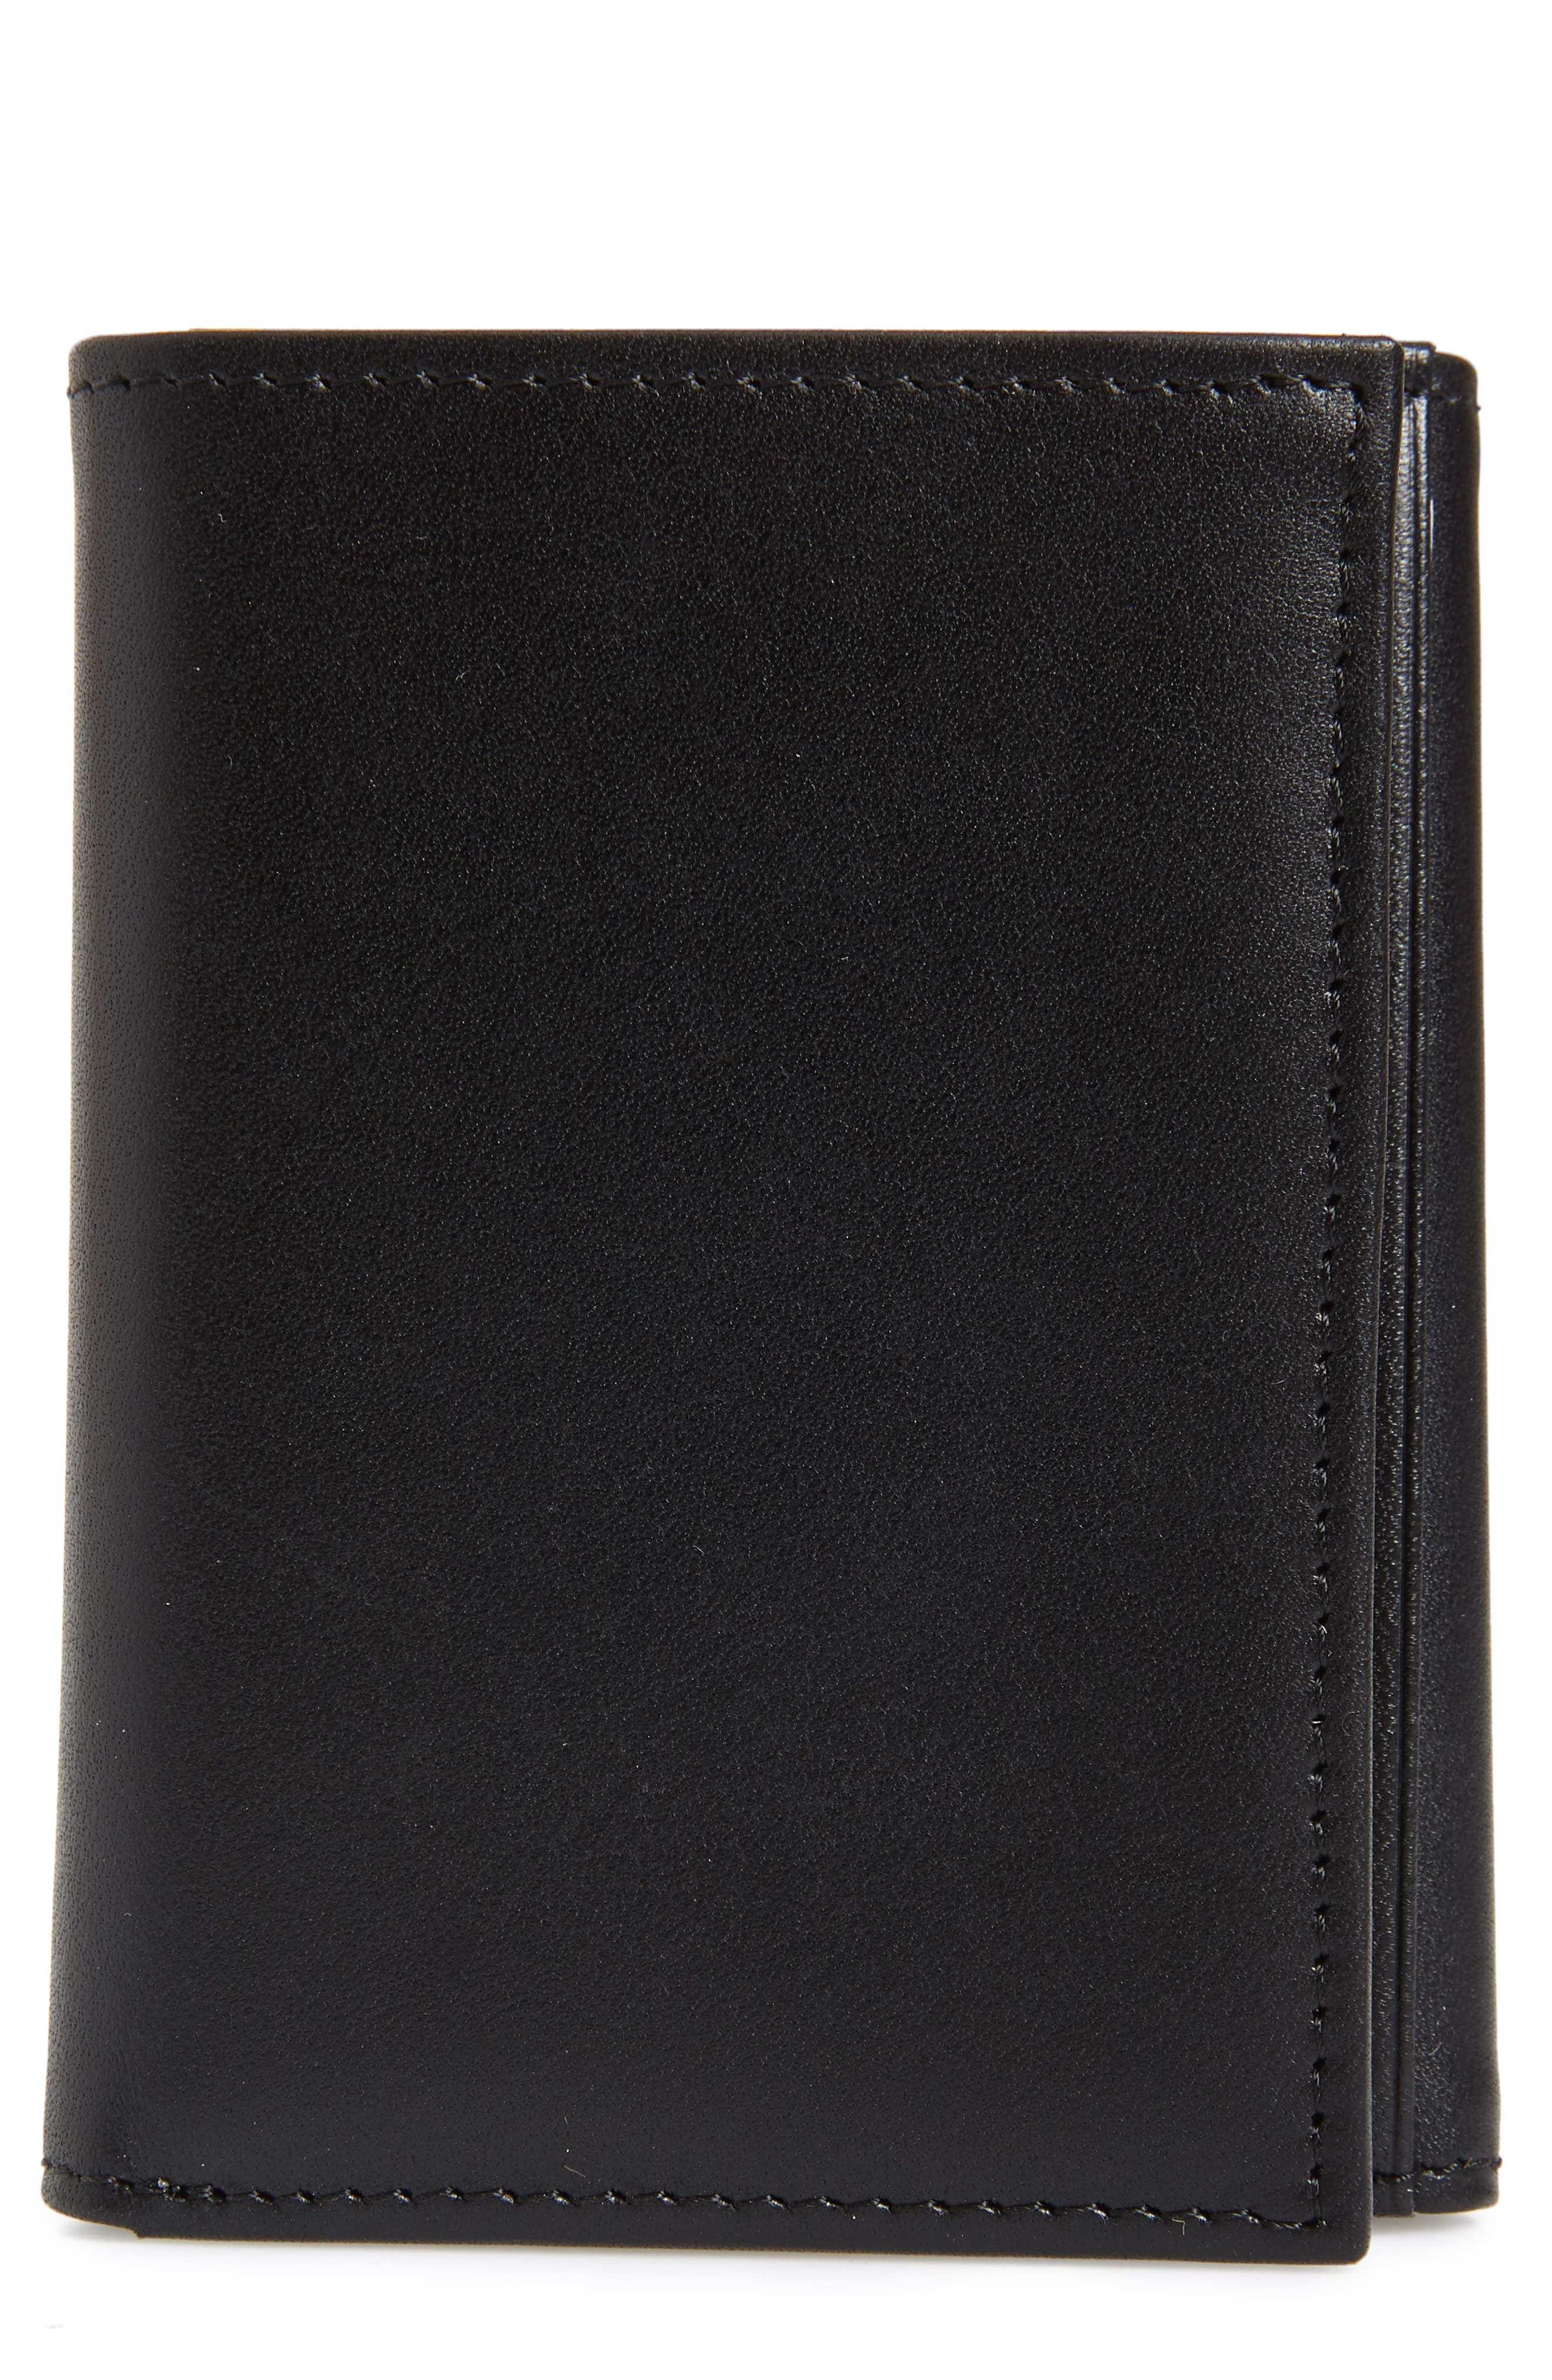 Chelsea Leather Trifold Wallet,                             Main thumbnail 1, color,                             BLACK